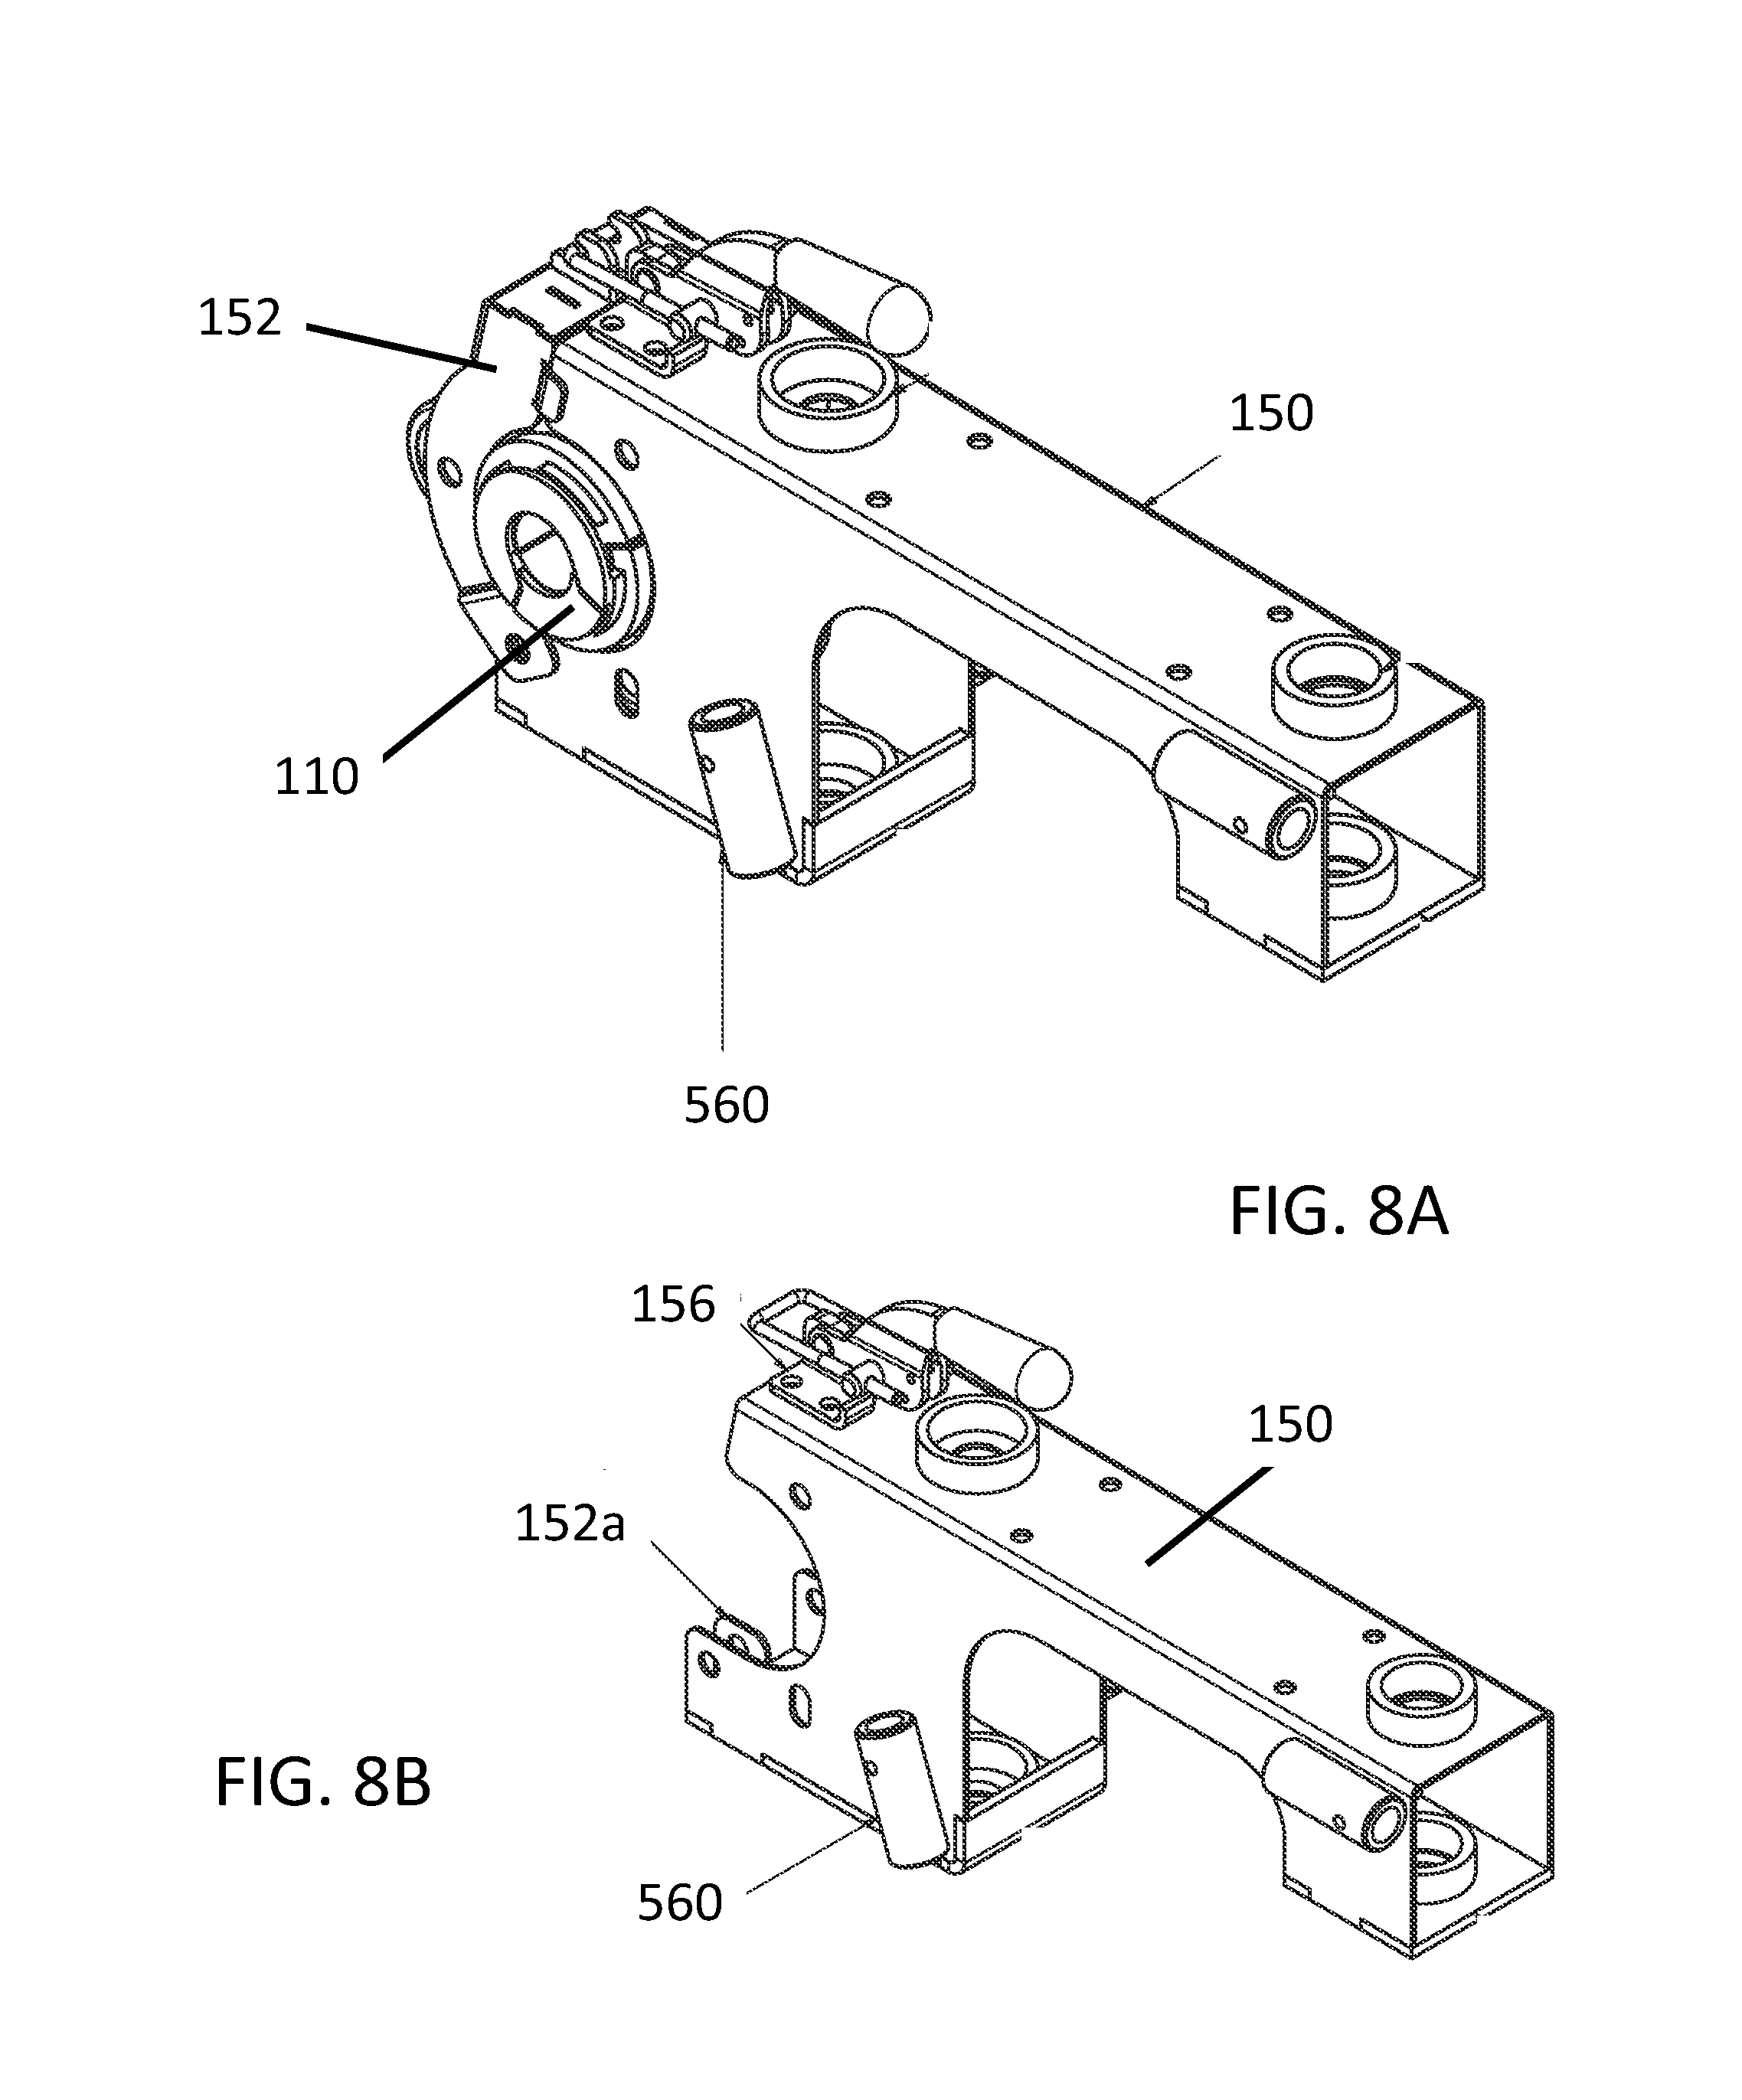 Patent Us8567567 Winding Tool For Torsion Spring For